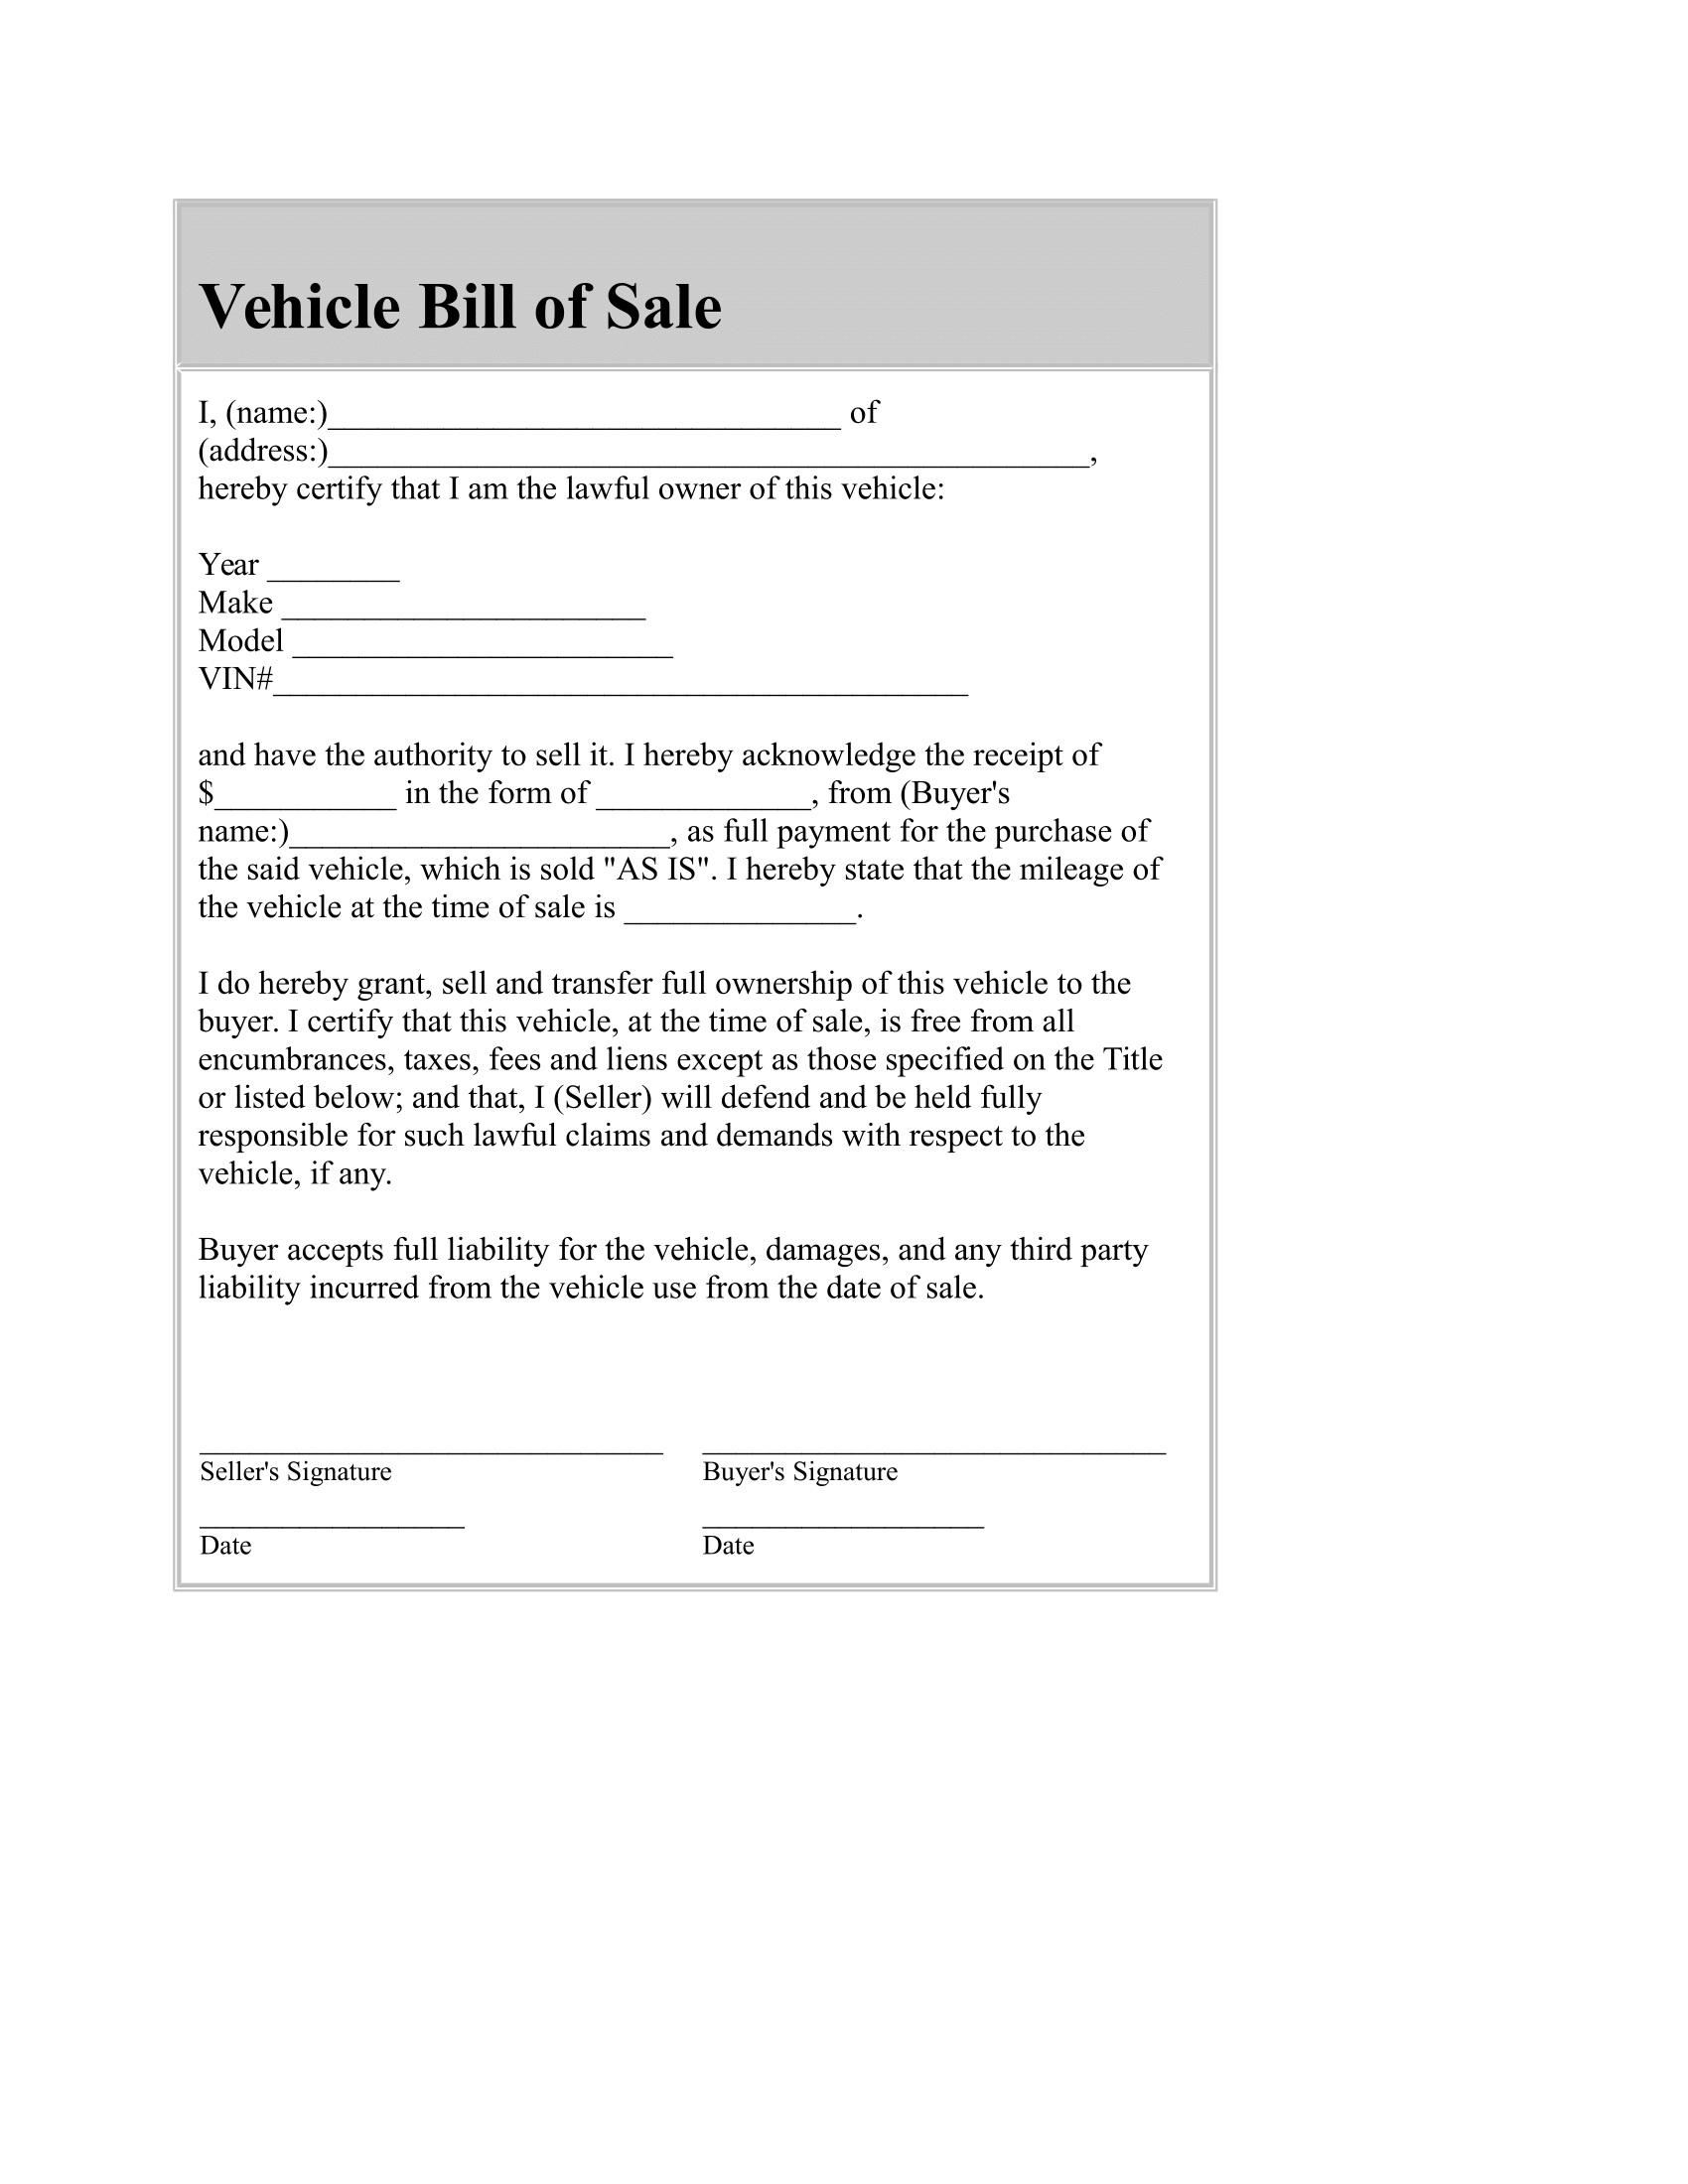 Car Bill of Sale – FREE Template Download in PDF and Word forms